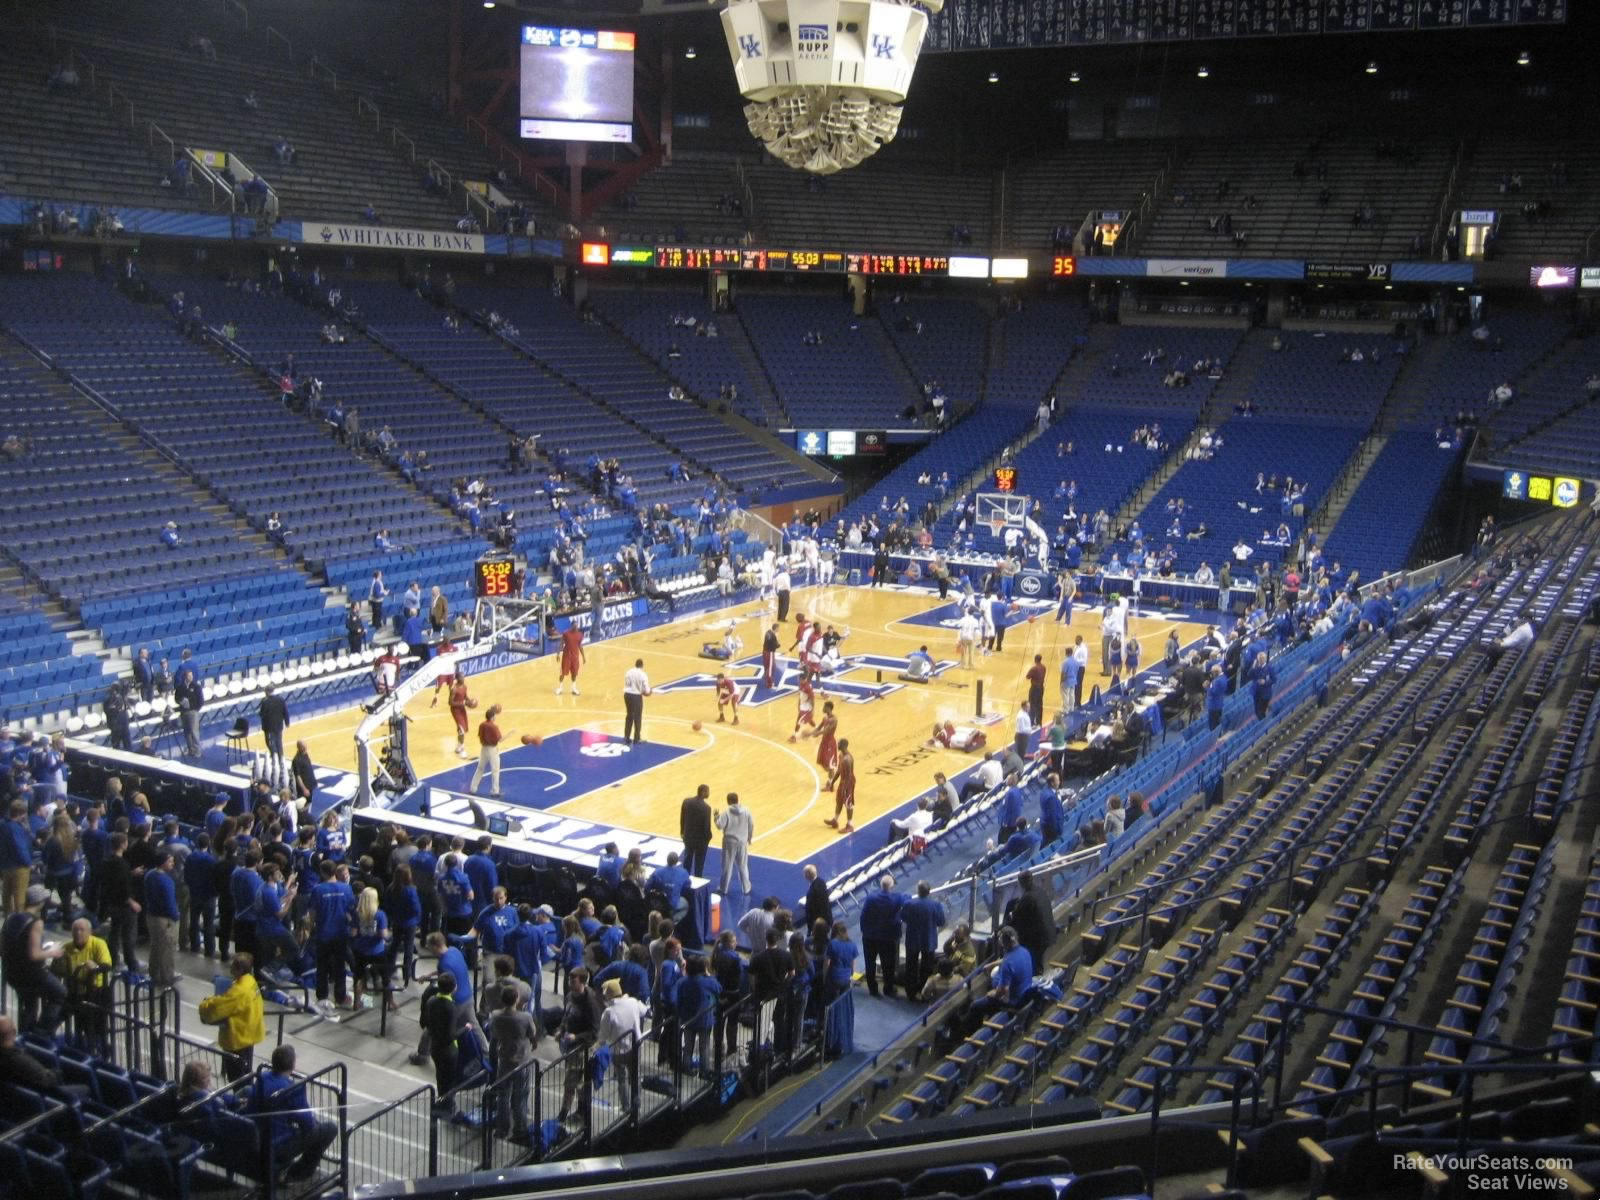 Section 36 seat view